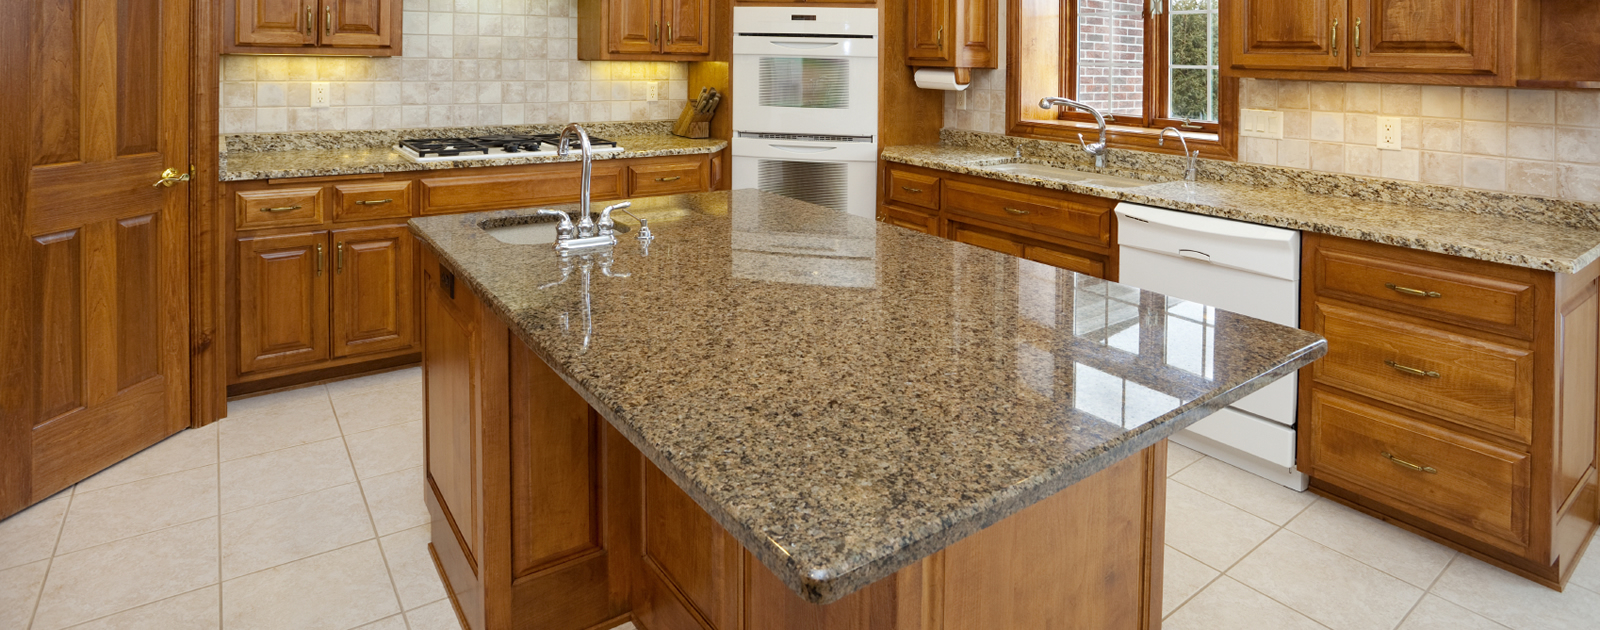 Of Granite Kitchen Countertops Twin Cities Top Rated Discount Granite Countertop Installation